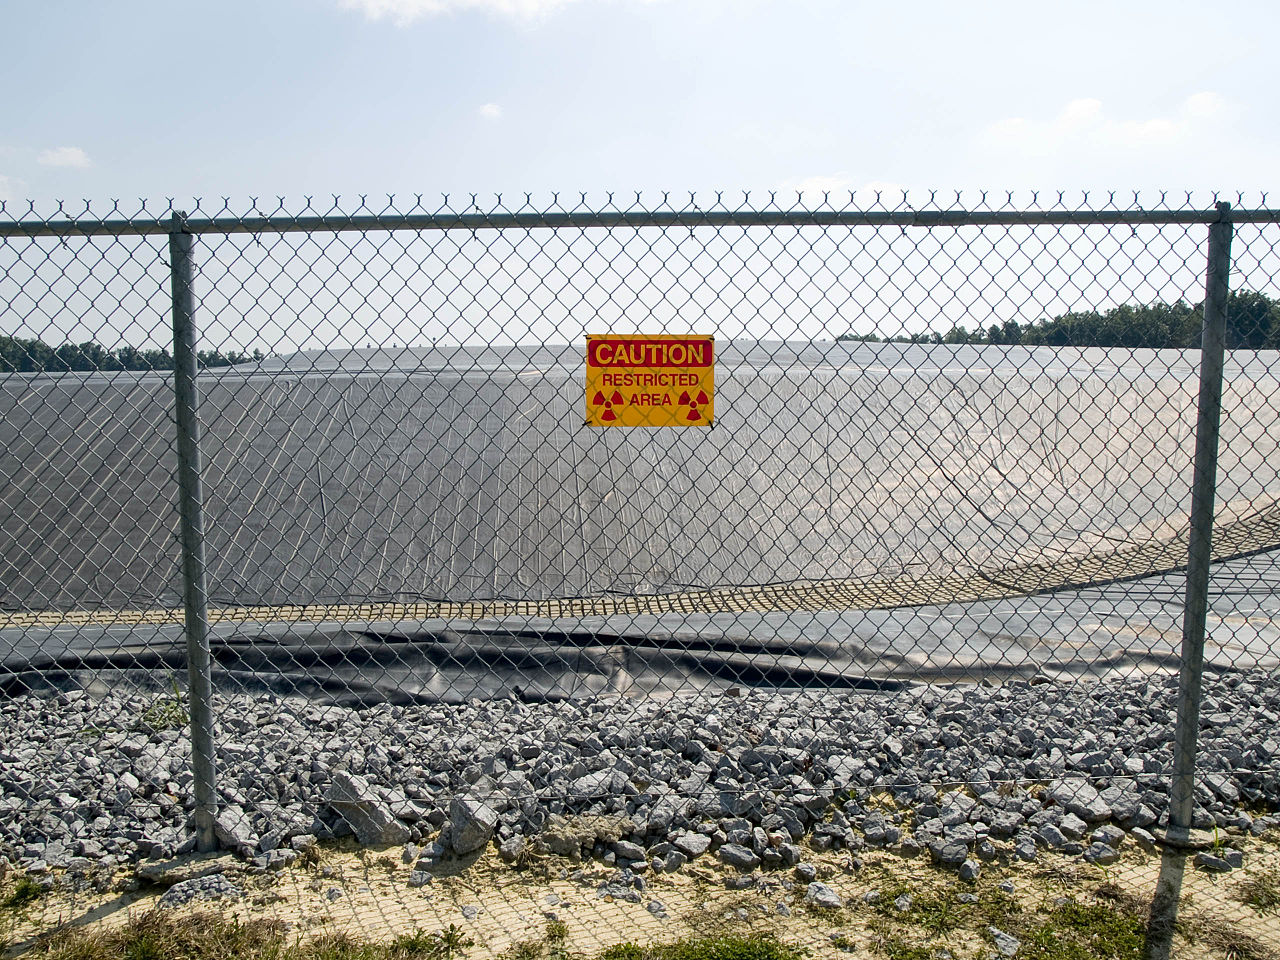 Maxey Flat Low Level Radioactive Waste Site in Kentucky